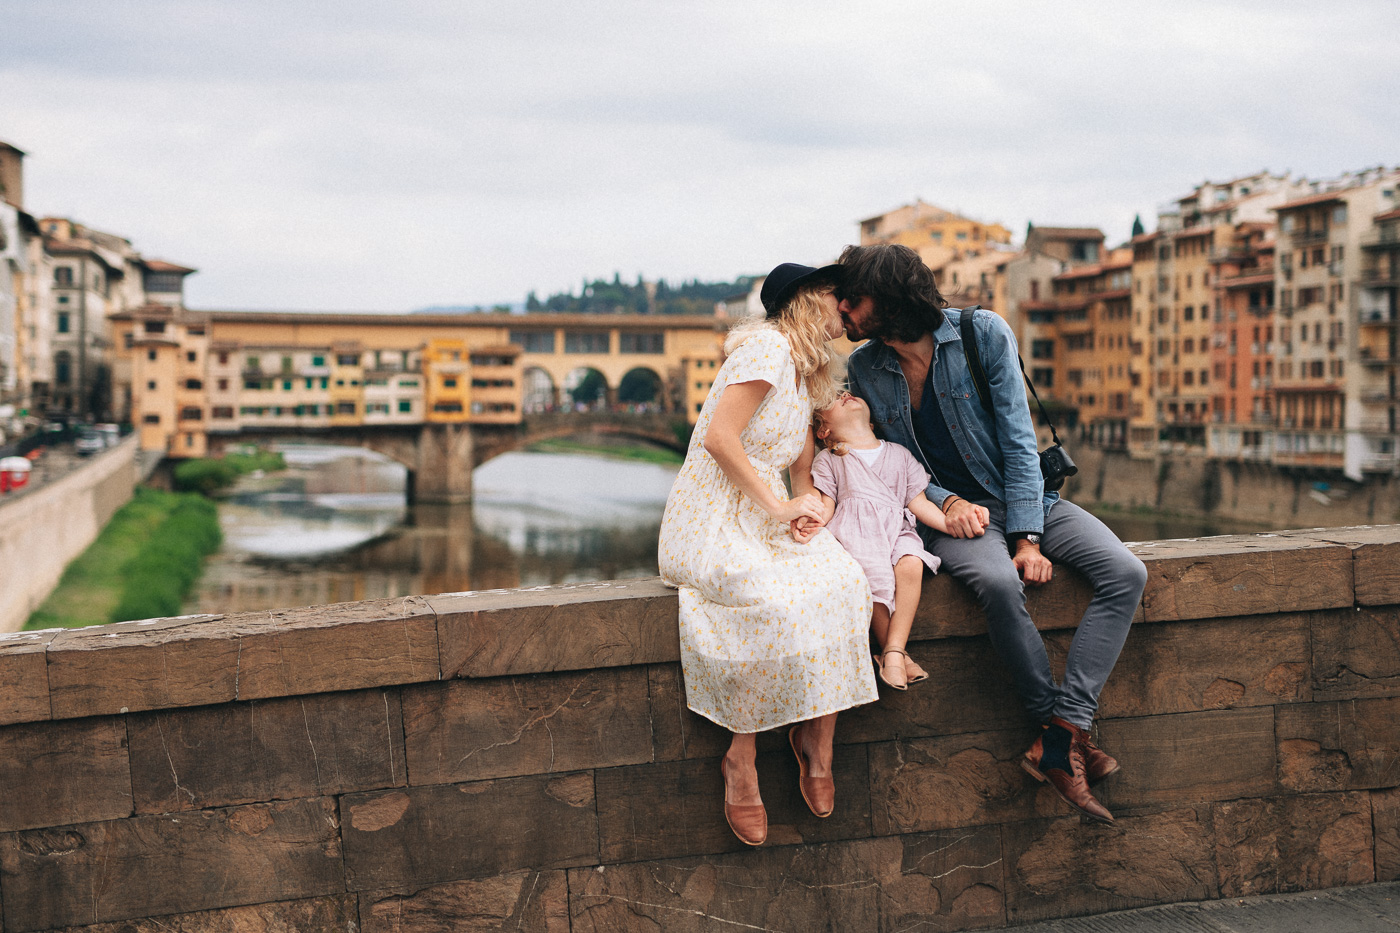 Family Photoshoot in Florence, Italy, Ponte Vecchio old bridge 89